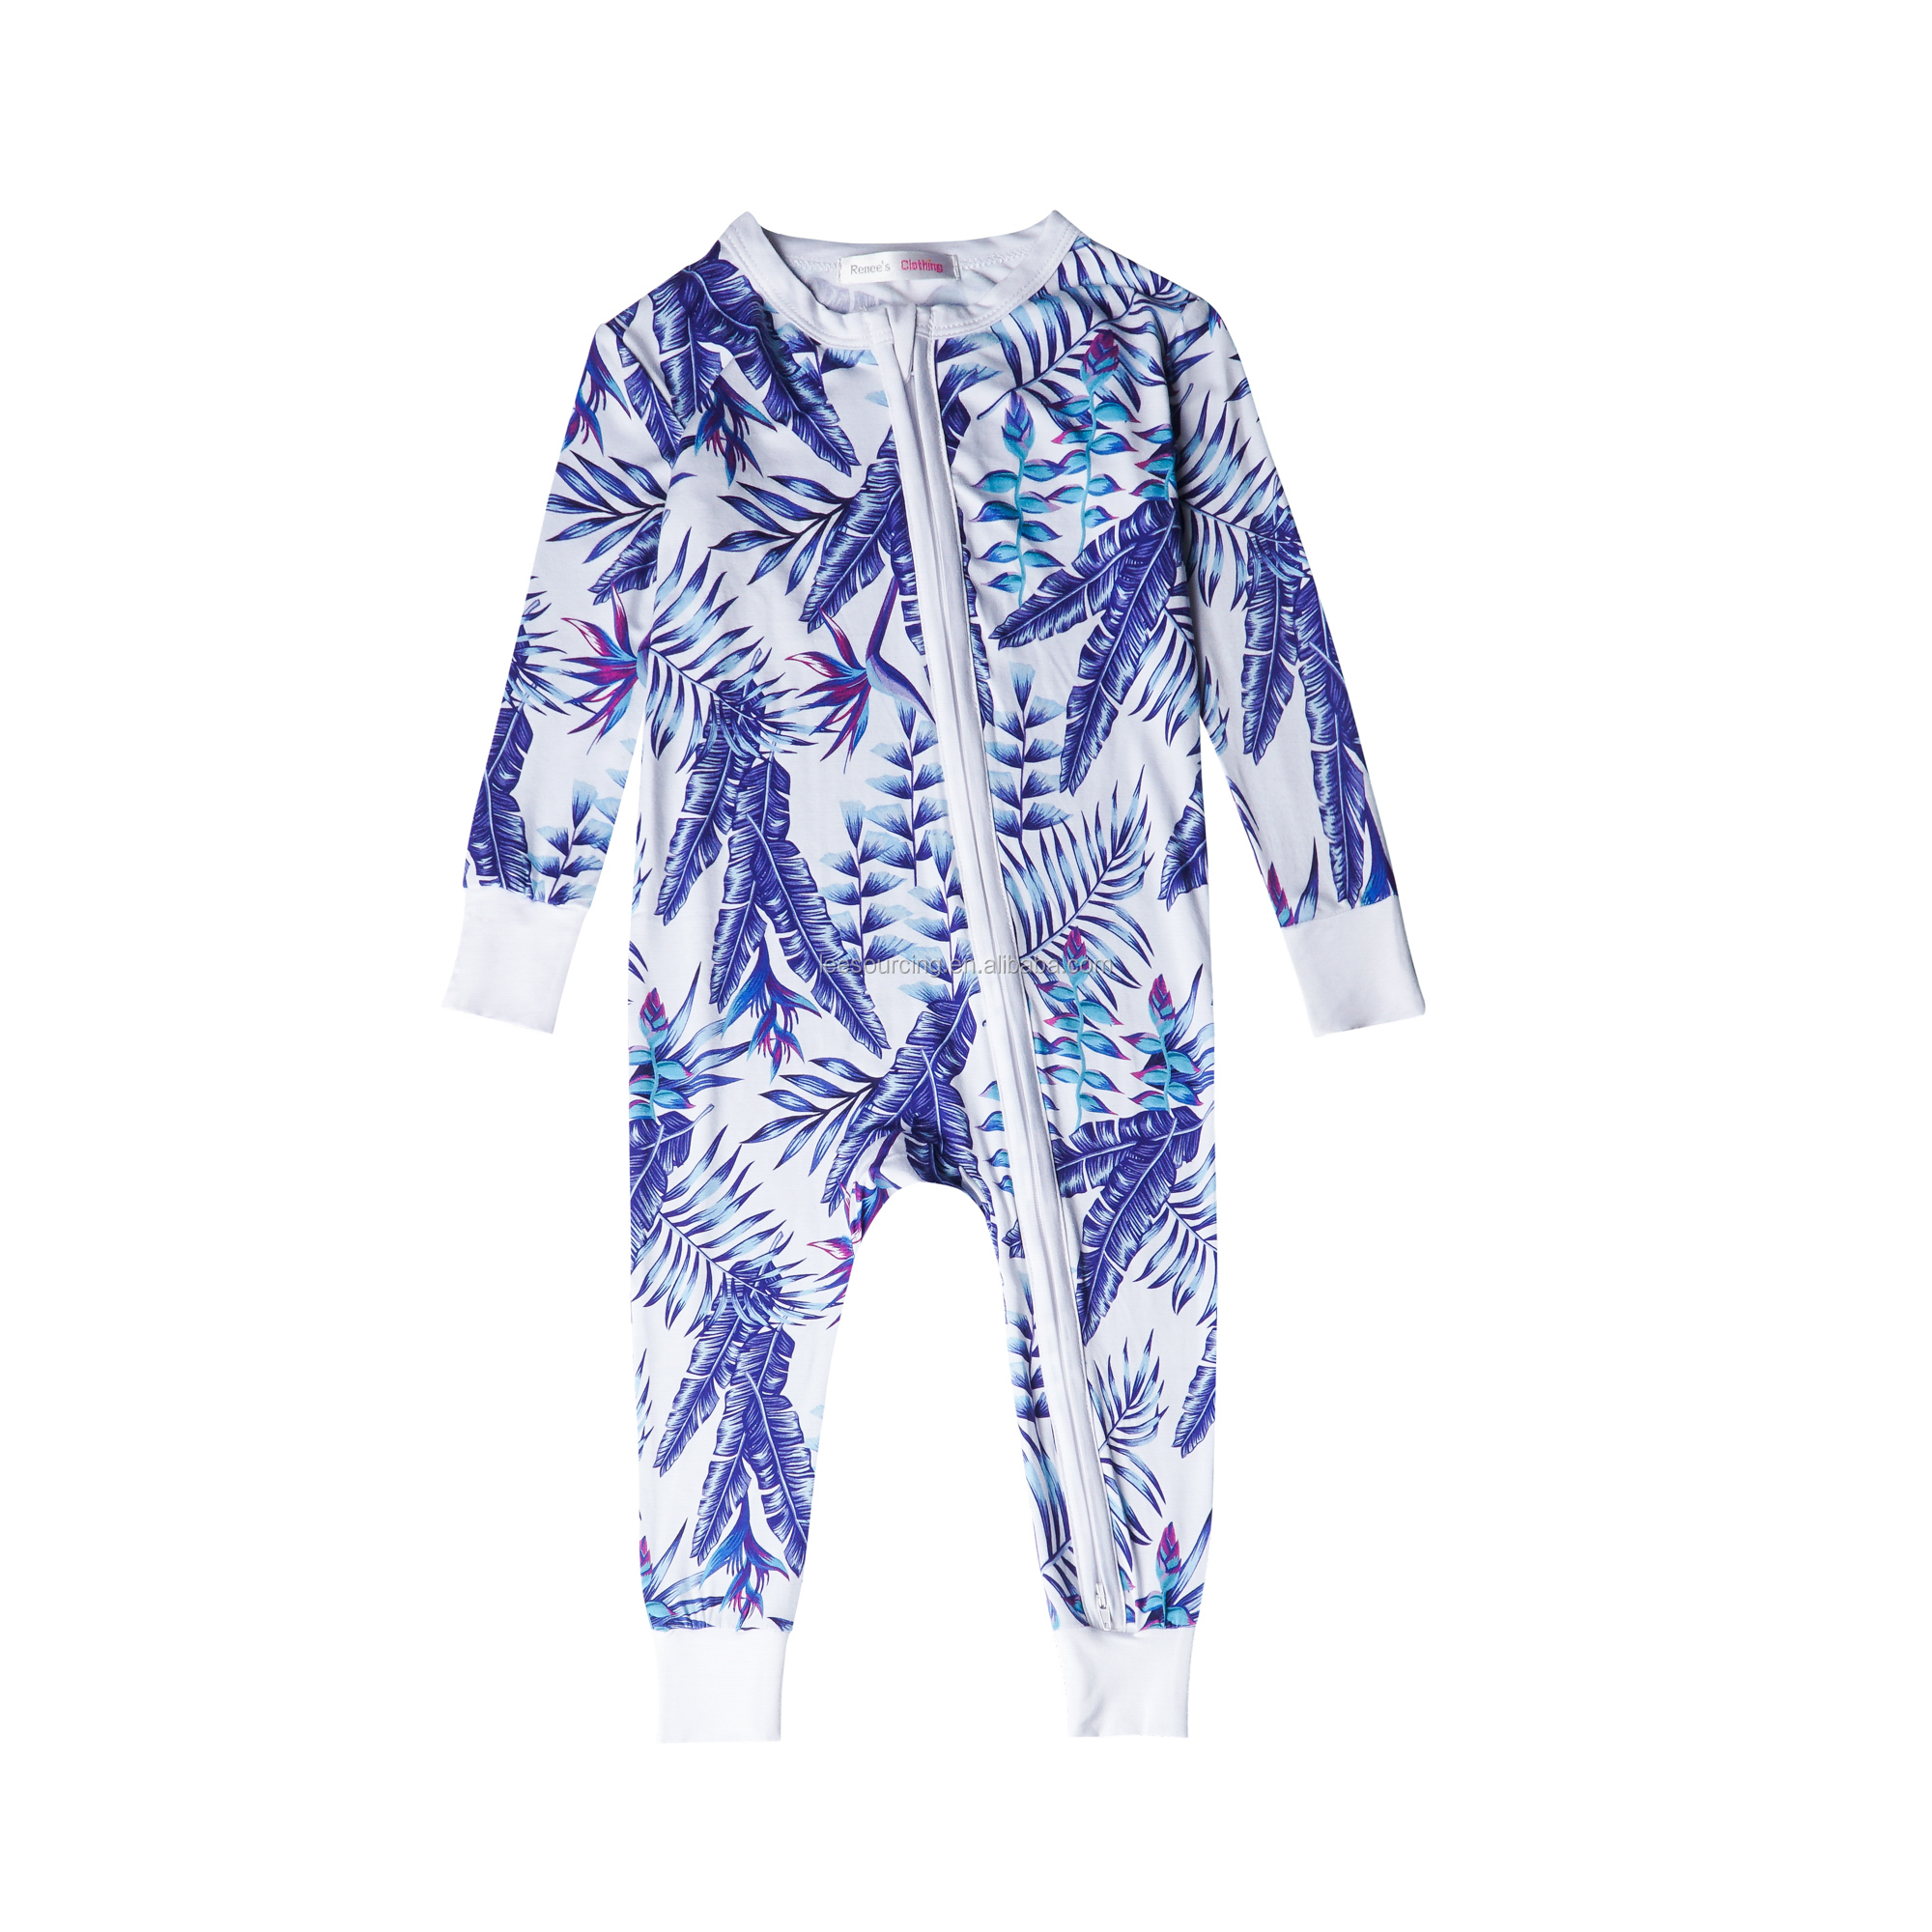 High quality bamboo baby zipper suit promotion